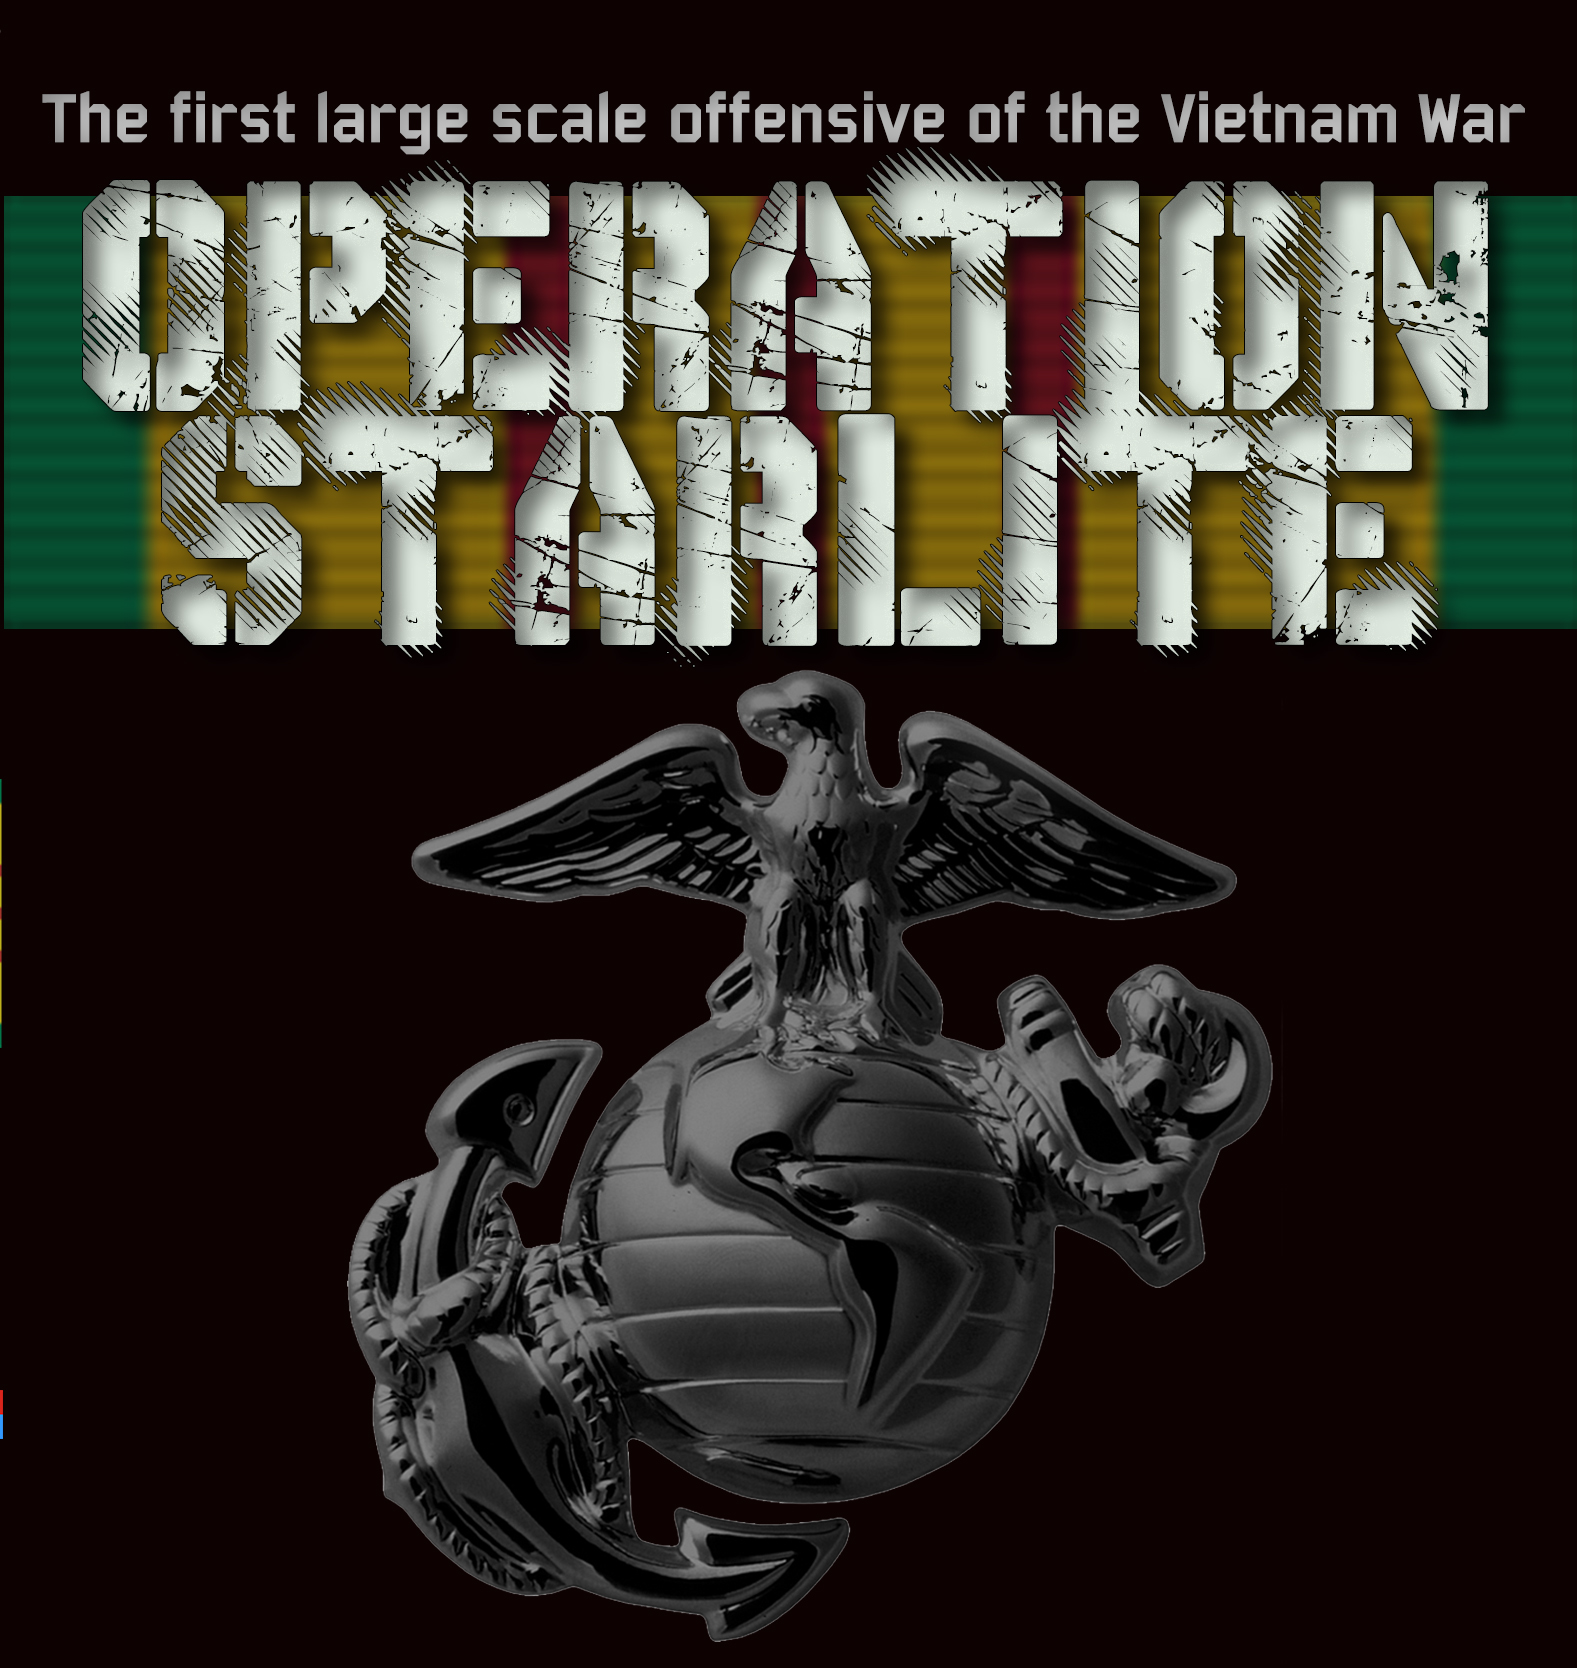 Operation Starlite Was The First Major Battle And Regimental Size Clash Between U S And Enemy Forces During The Vietnam War Over The Course Of Six Days